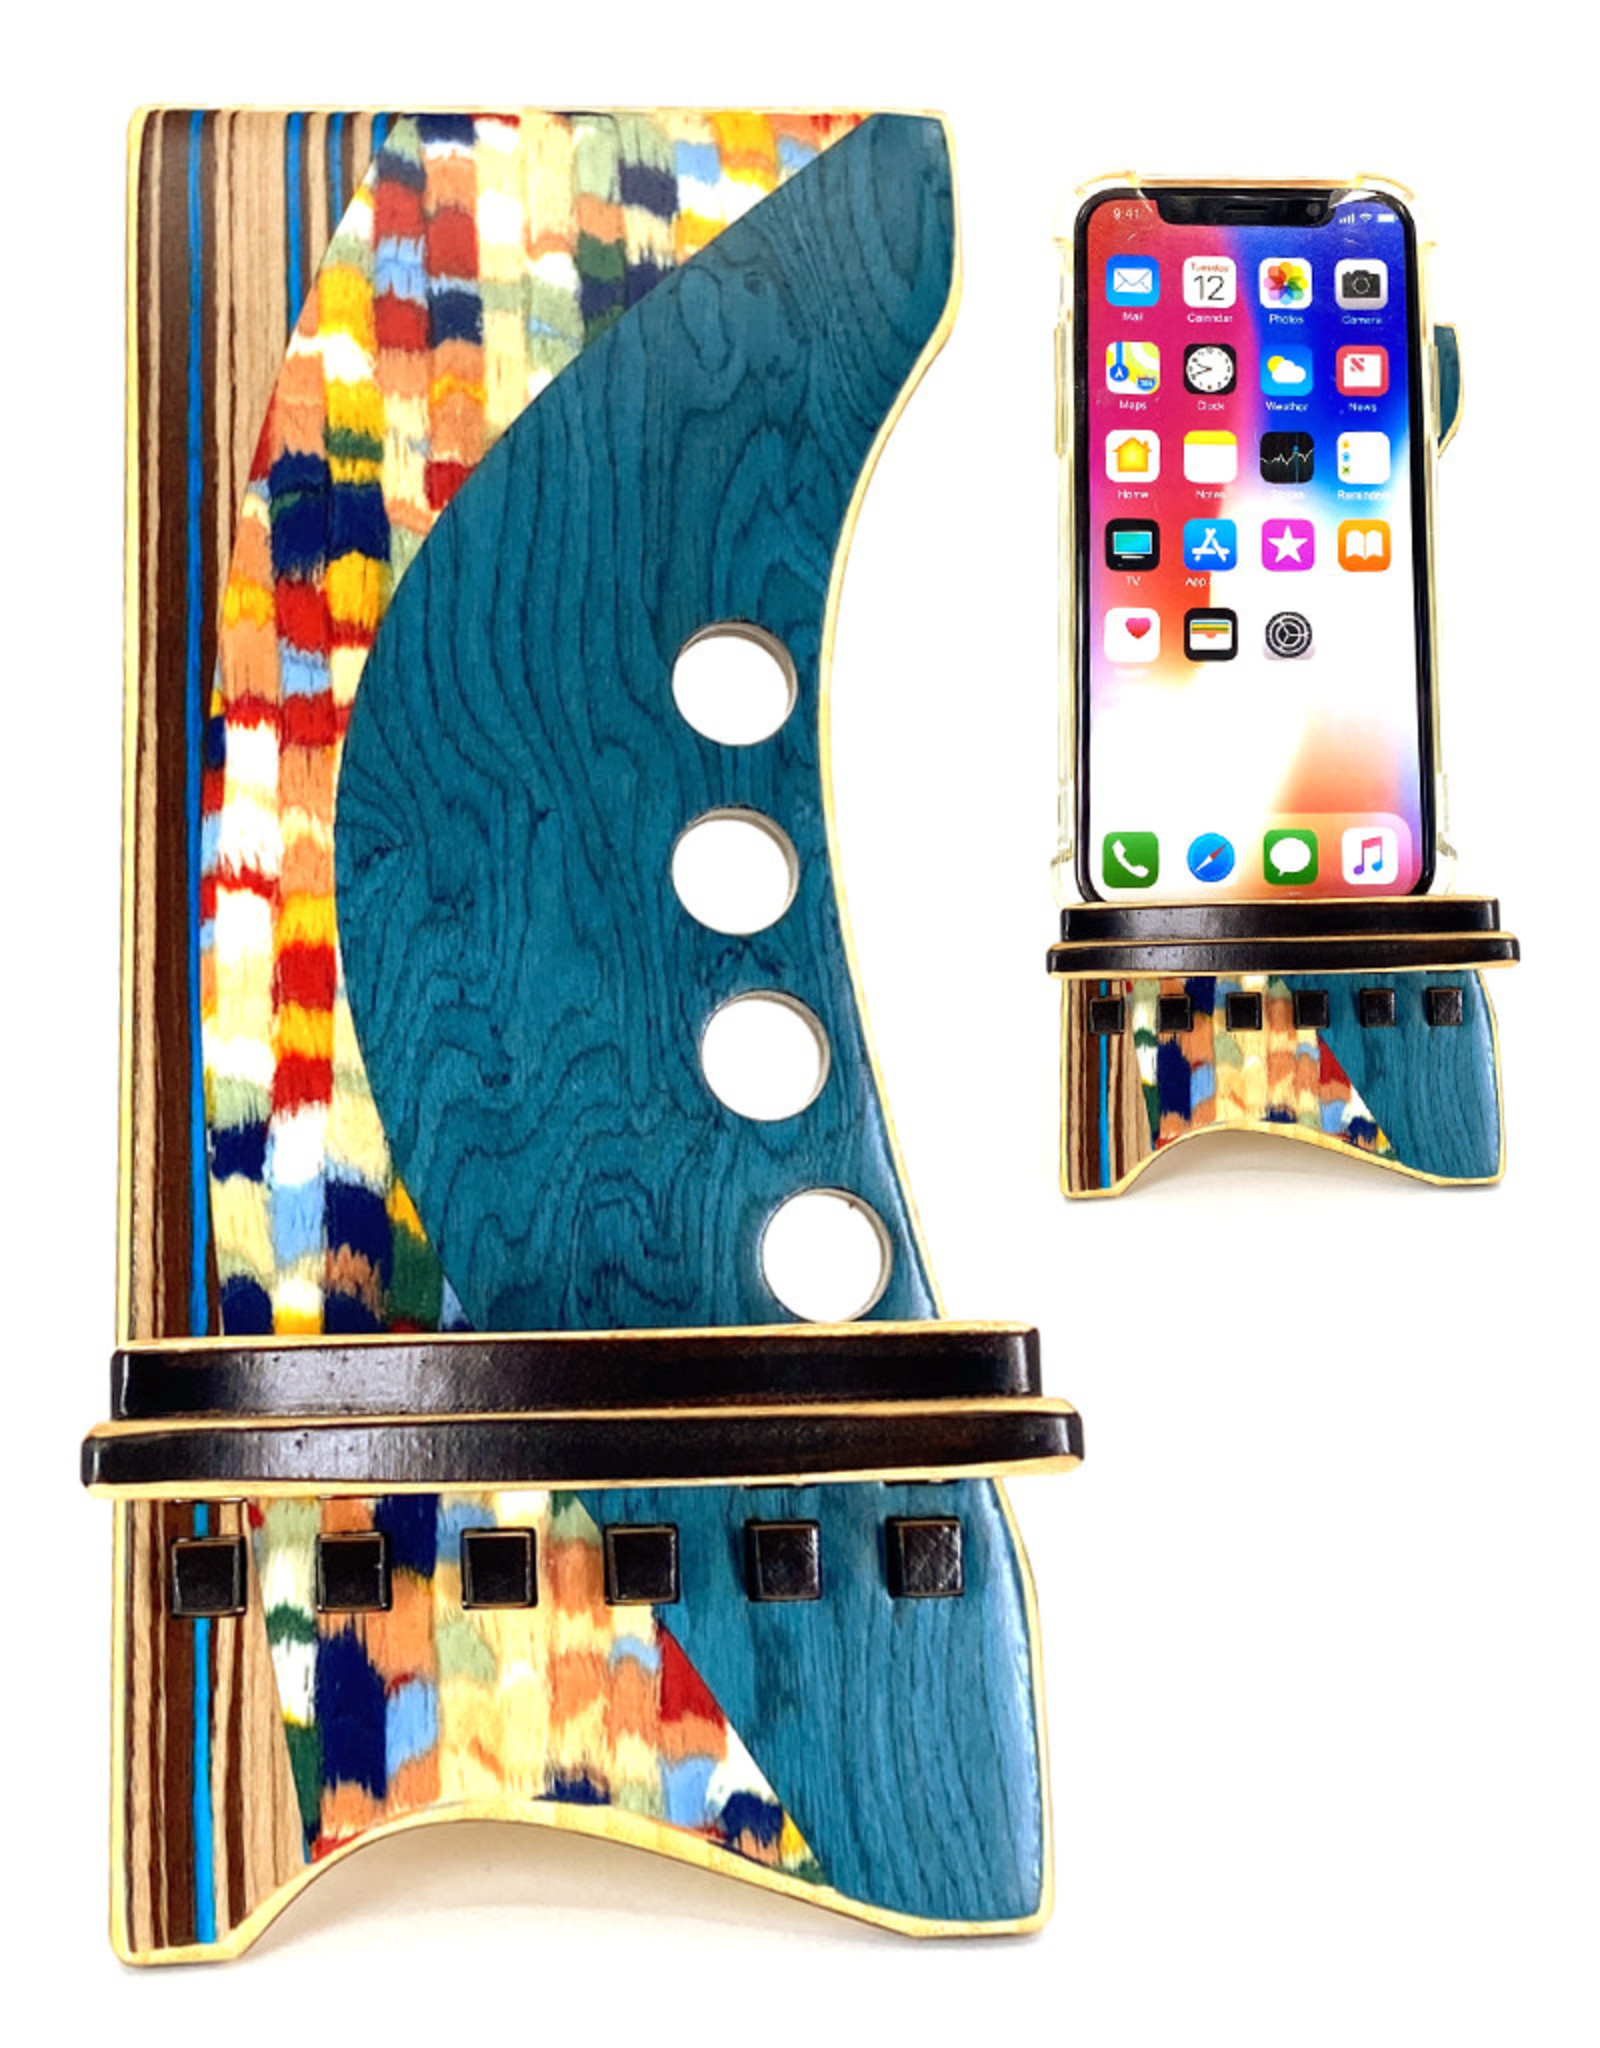 LOST ART WOODWORKS BLUE CONFETTI II MARQUETRY INLAID PHONE STAND